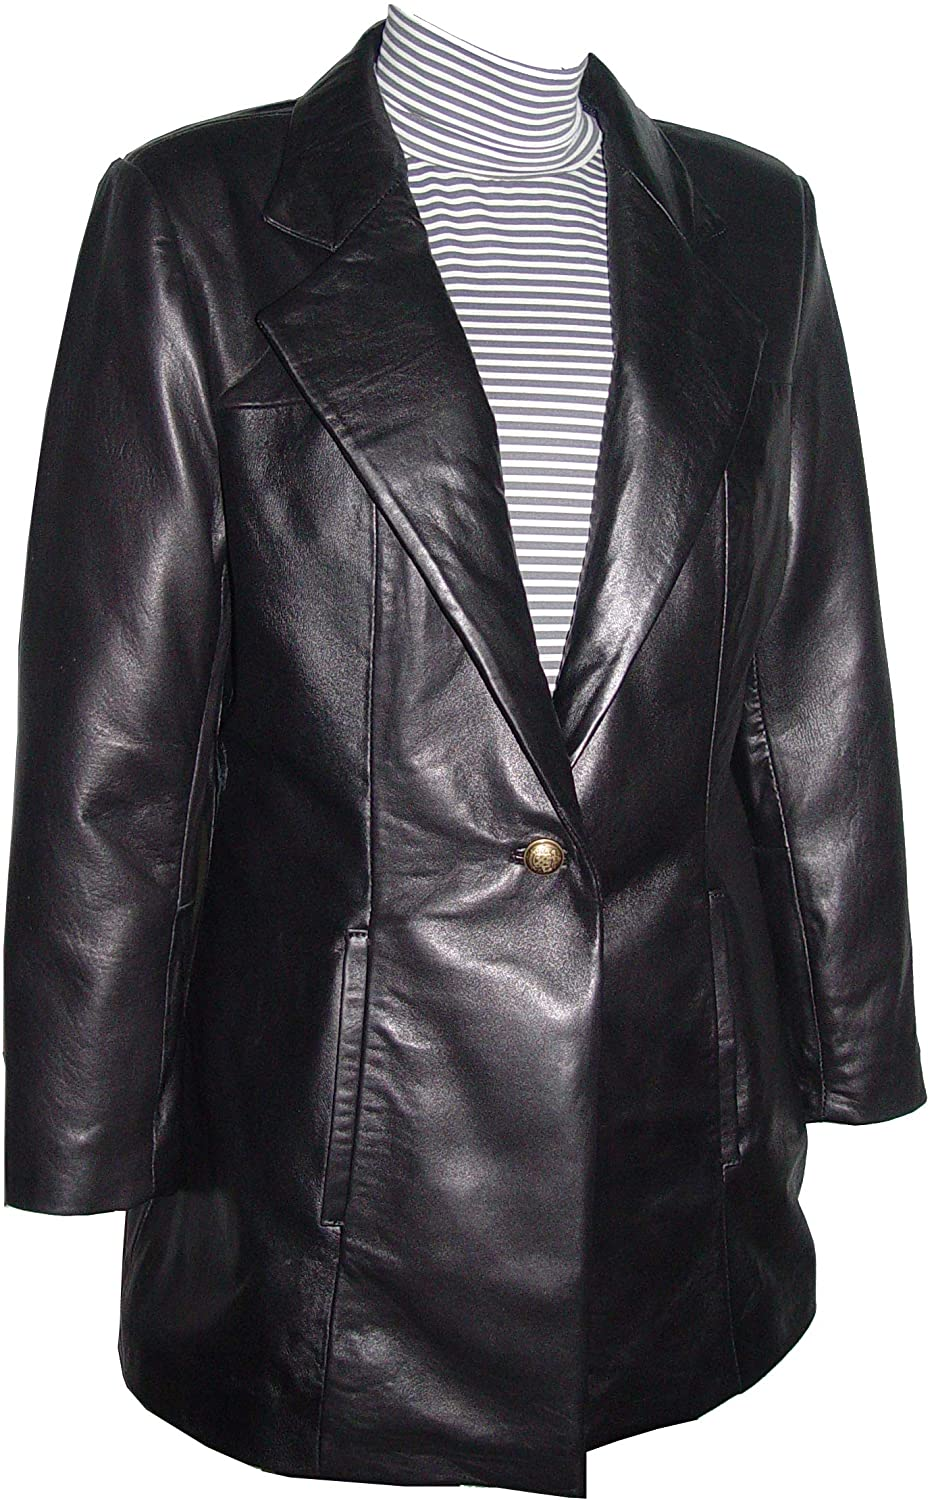 Paccilo 12P Size Soft Lambskin Coat Leather for Women Black